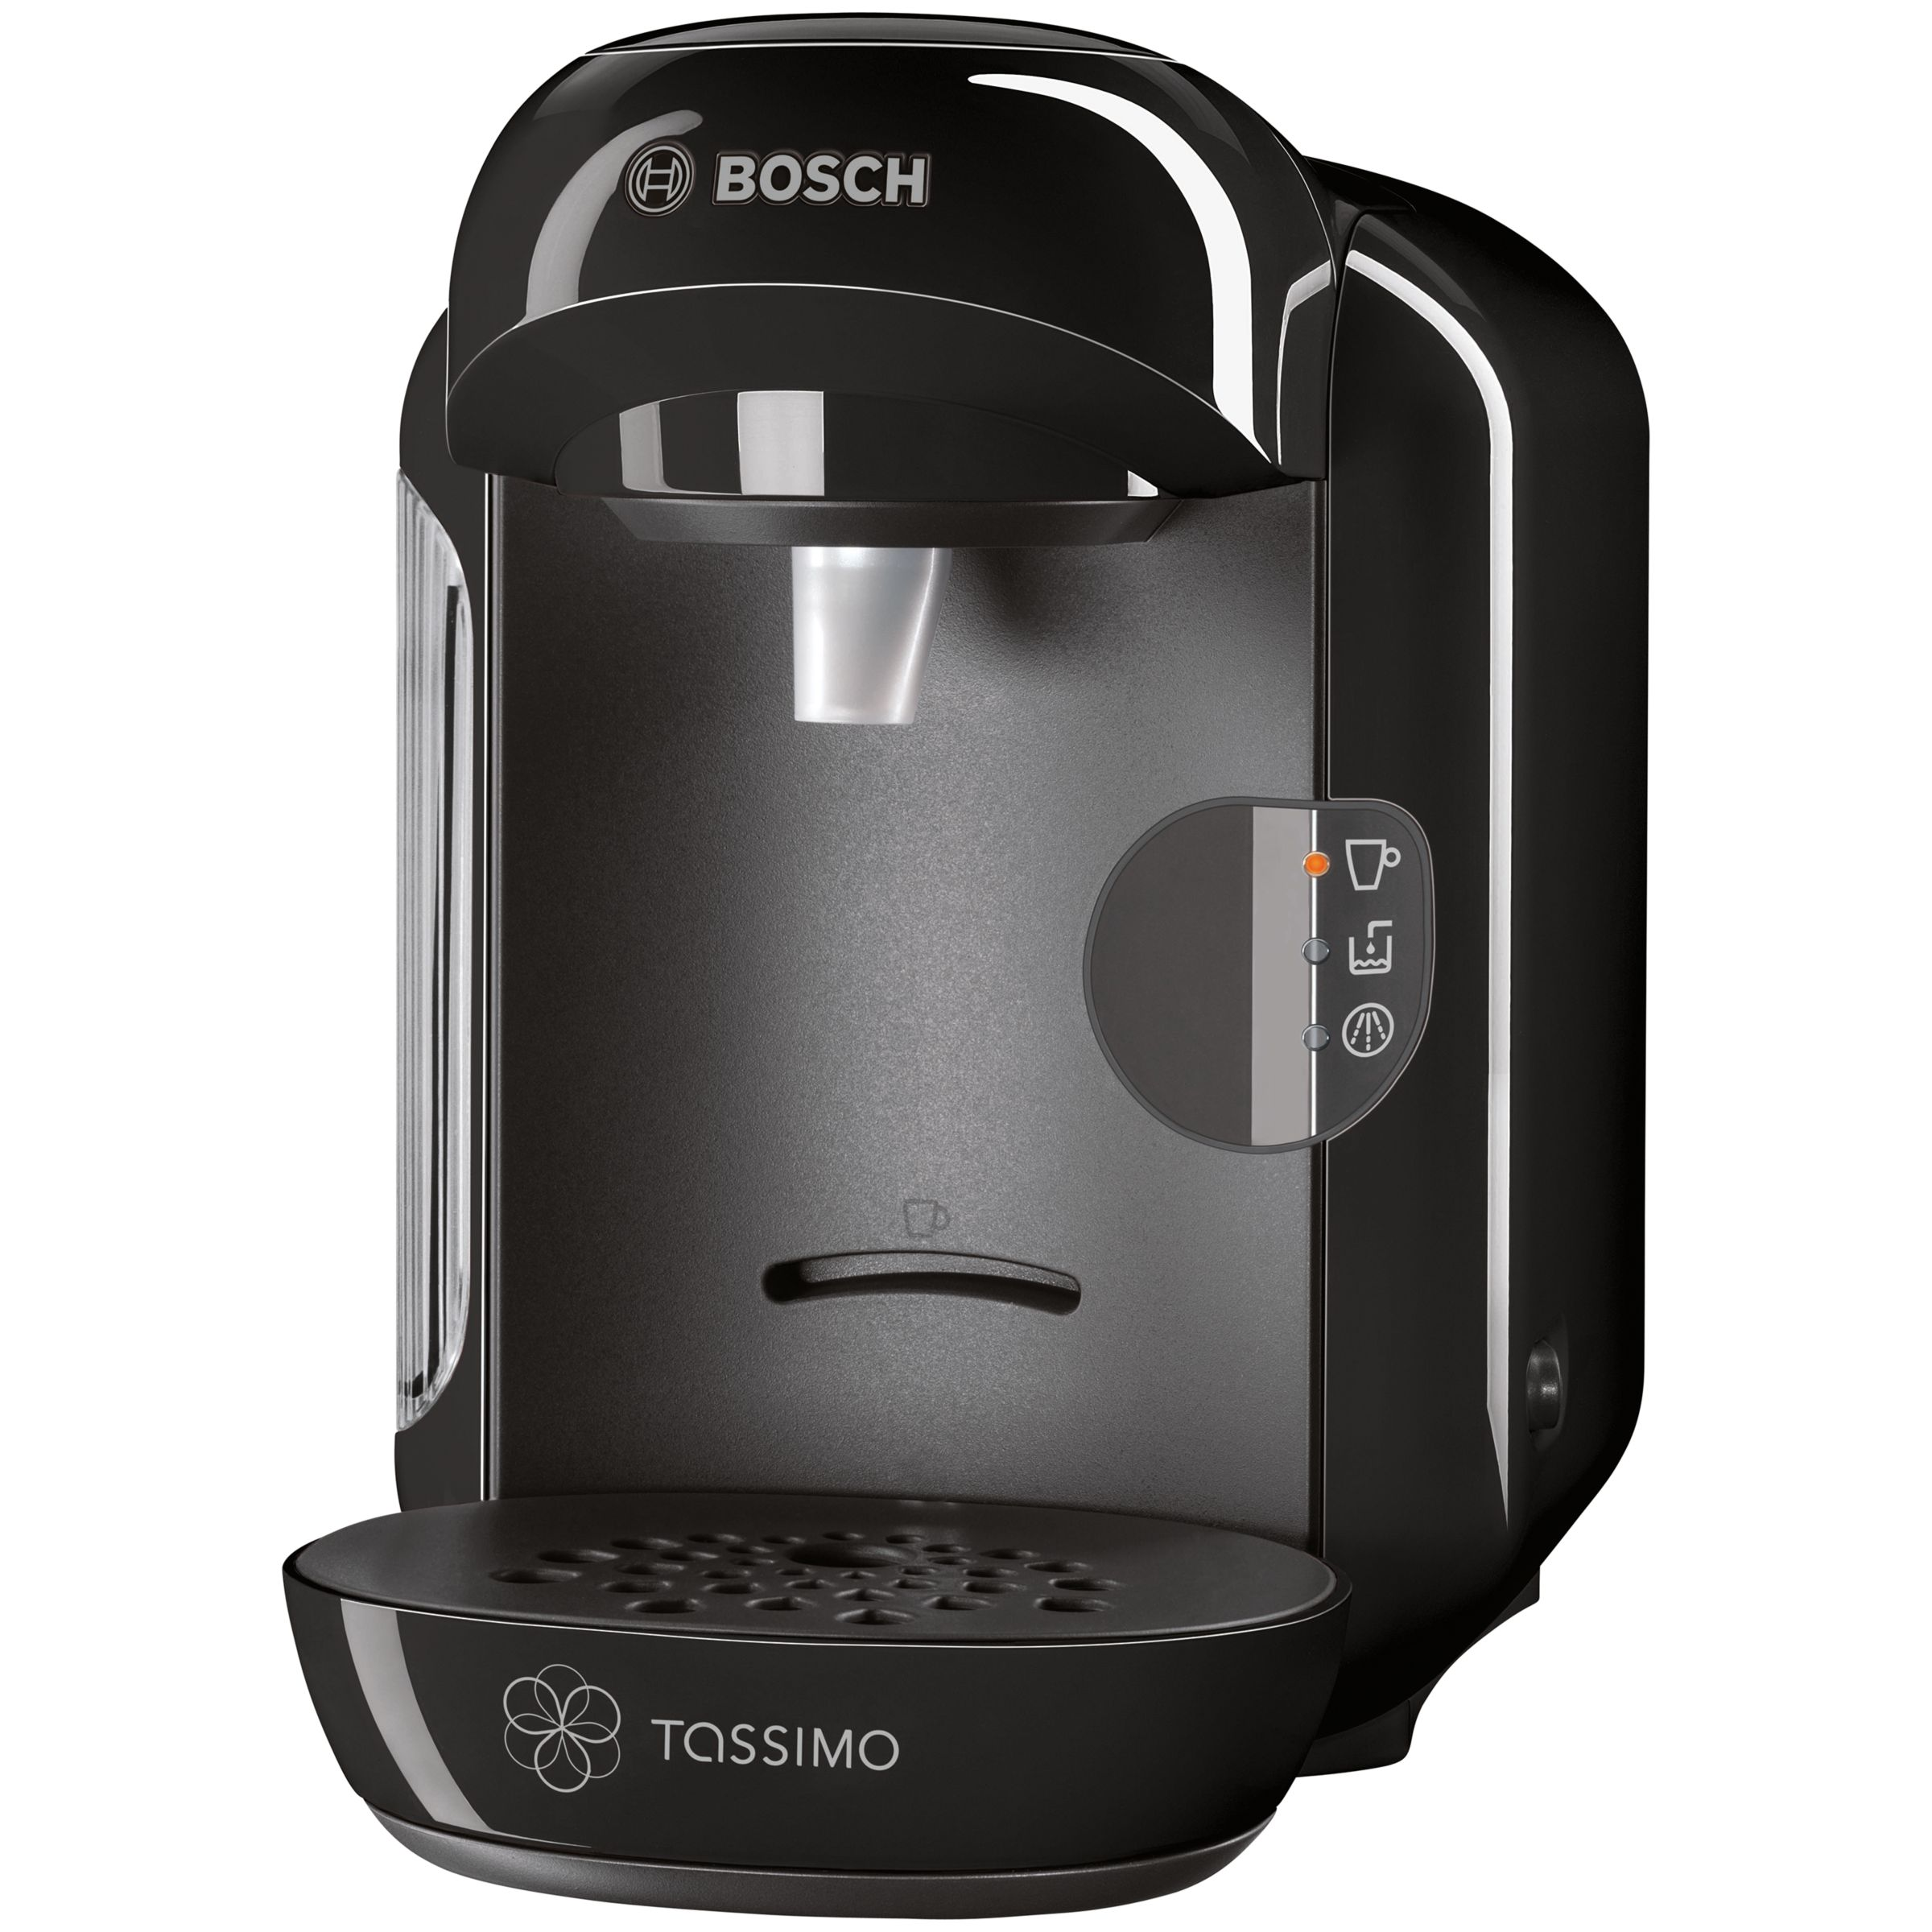 Buy Tassimo Vivy Coffee Machine by Bosch, Black John Lewis